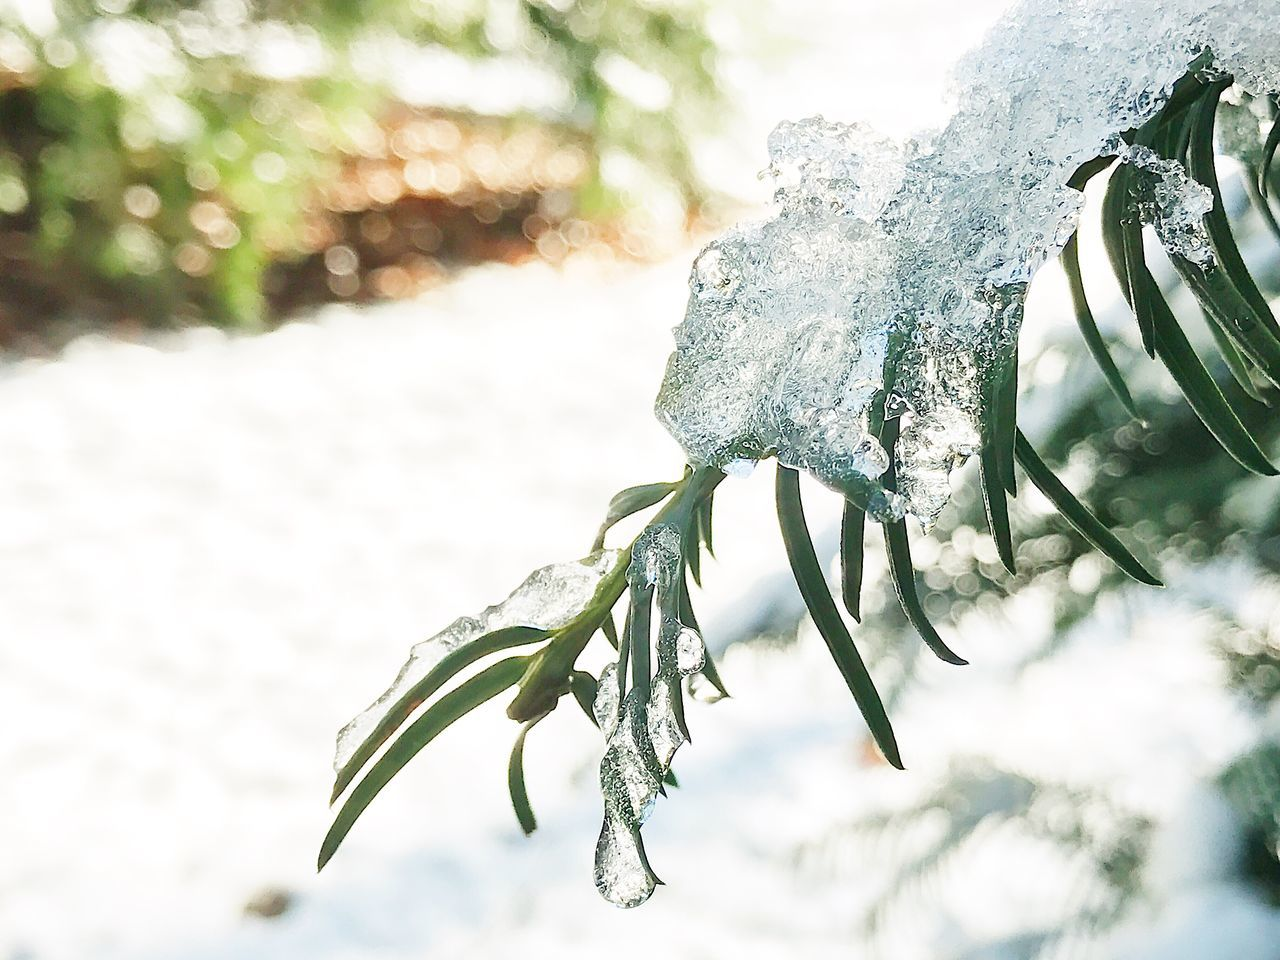 Nature Focus On Foreground Close-up Winter Cold Temperature No People Beauty In Nature Twig Branch Growth Outdoors Ice Day Plant Tree Snow Fragility Ice